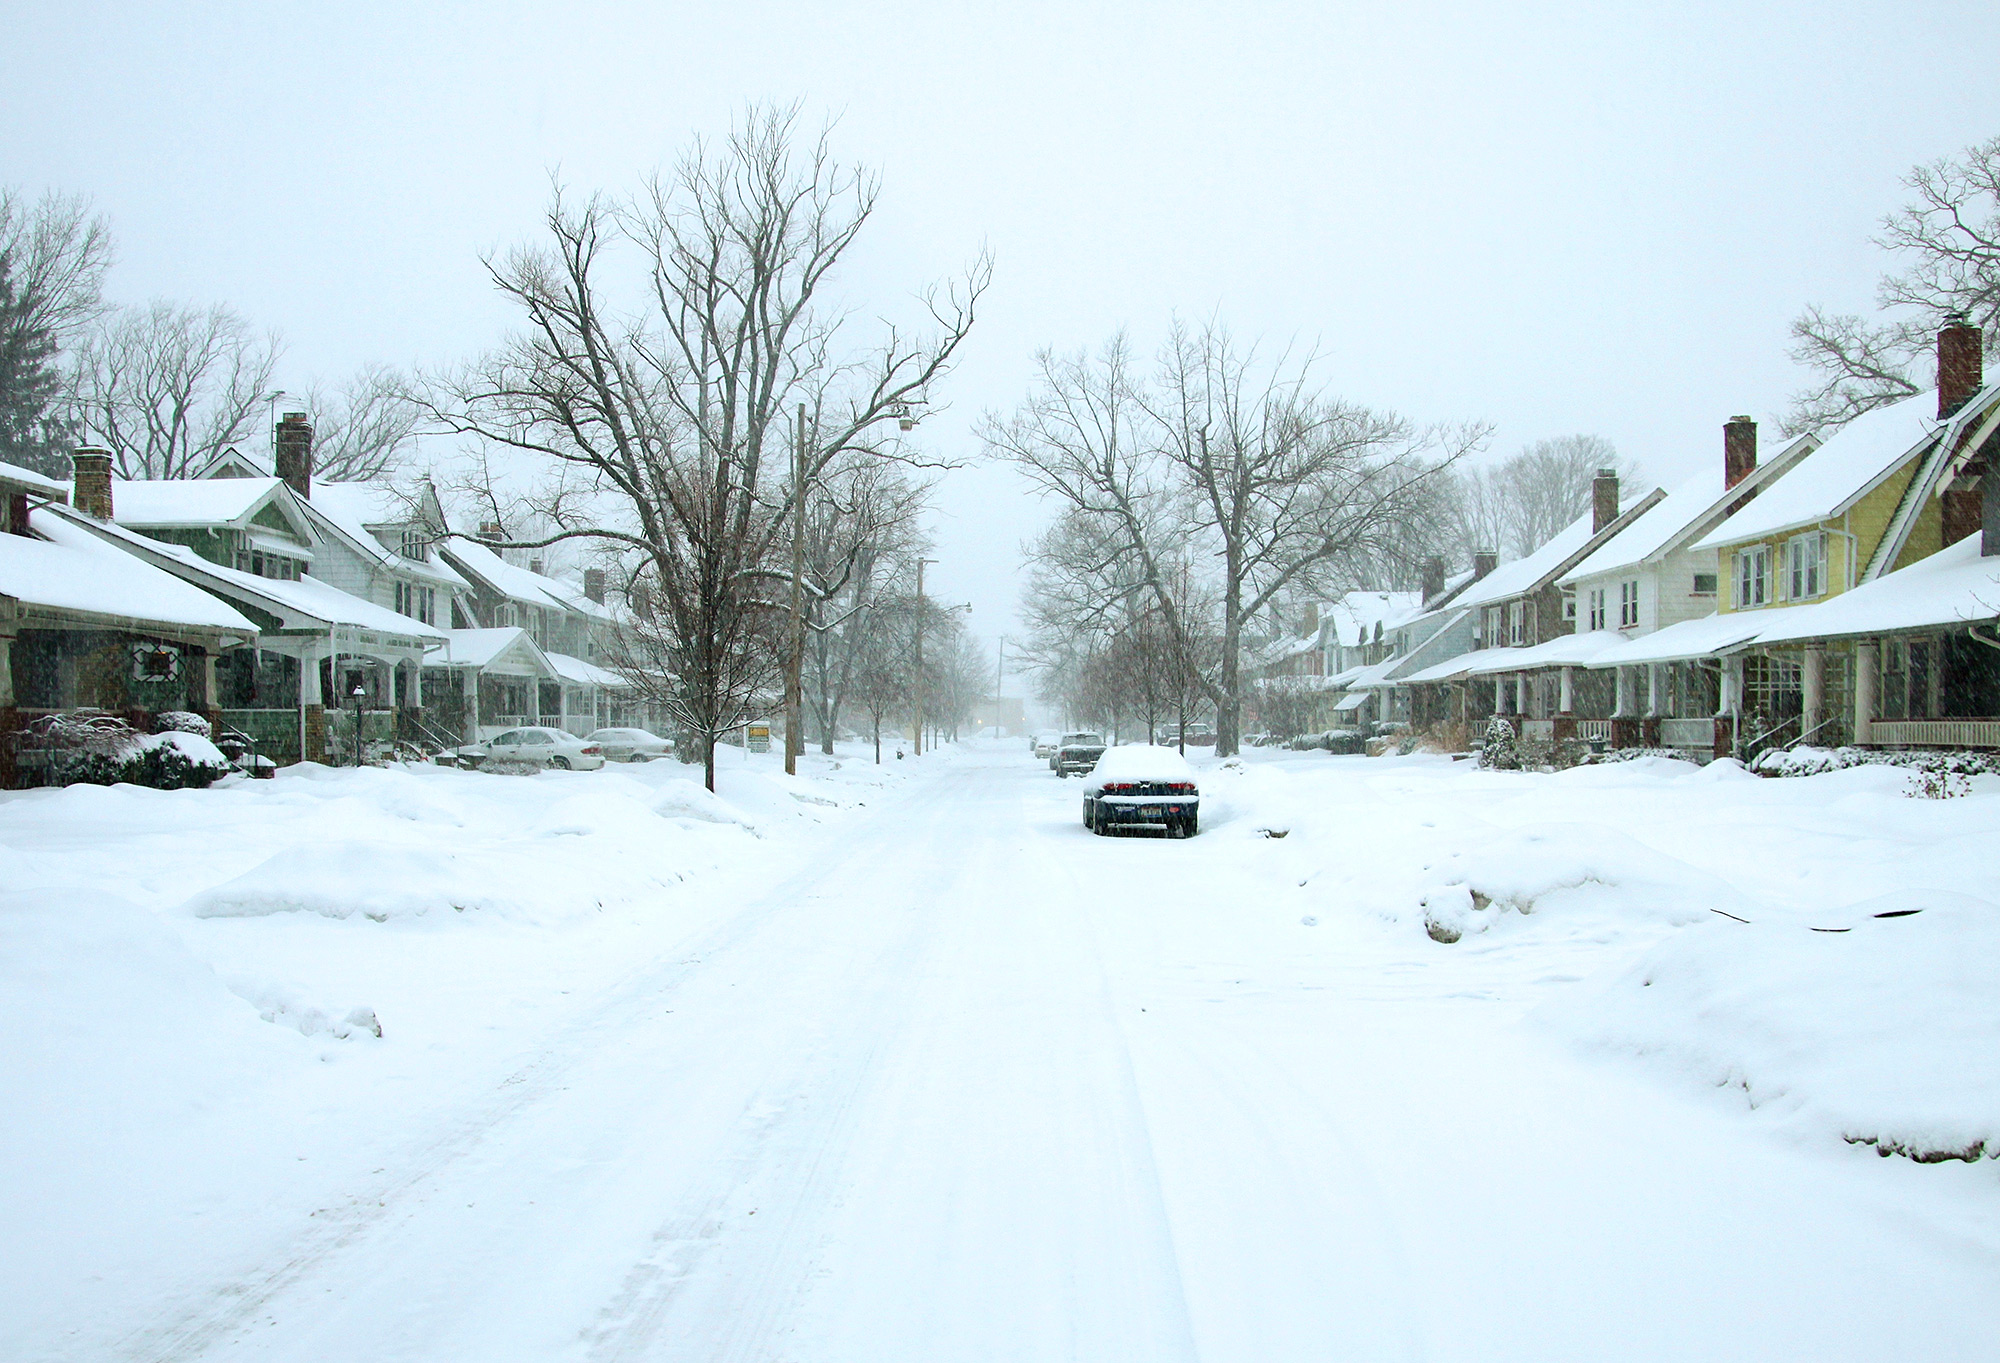 Residential street covered in a blanket of snow after the storm